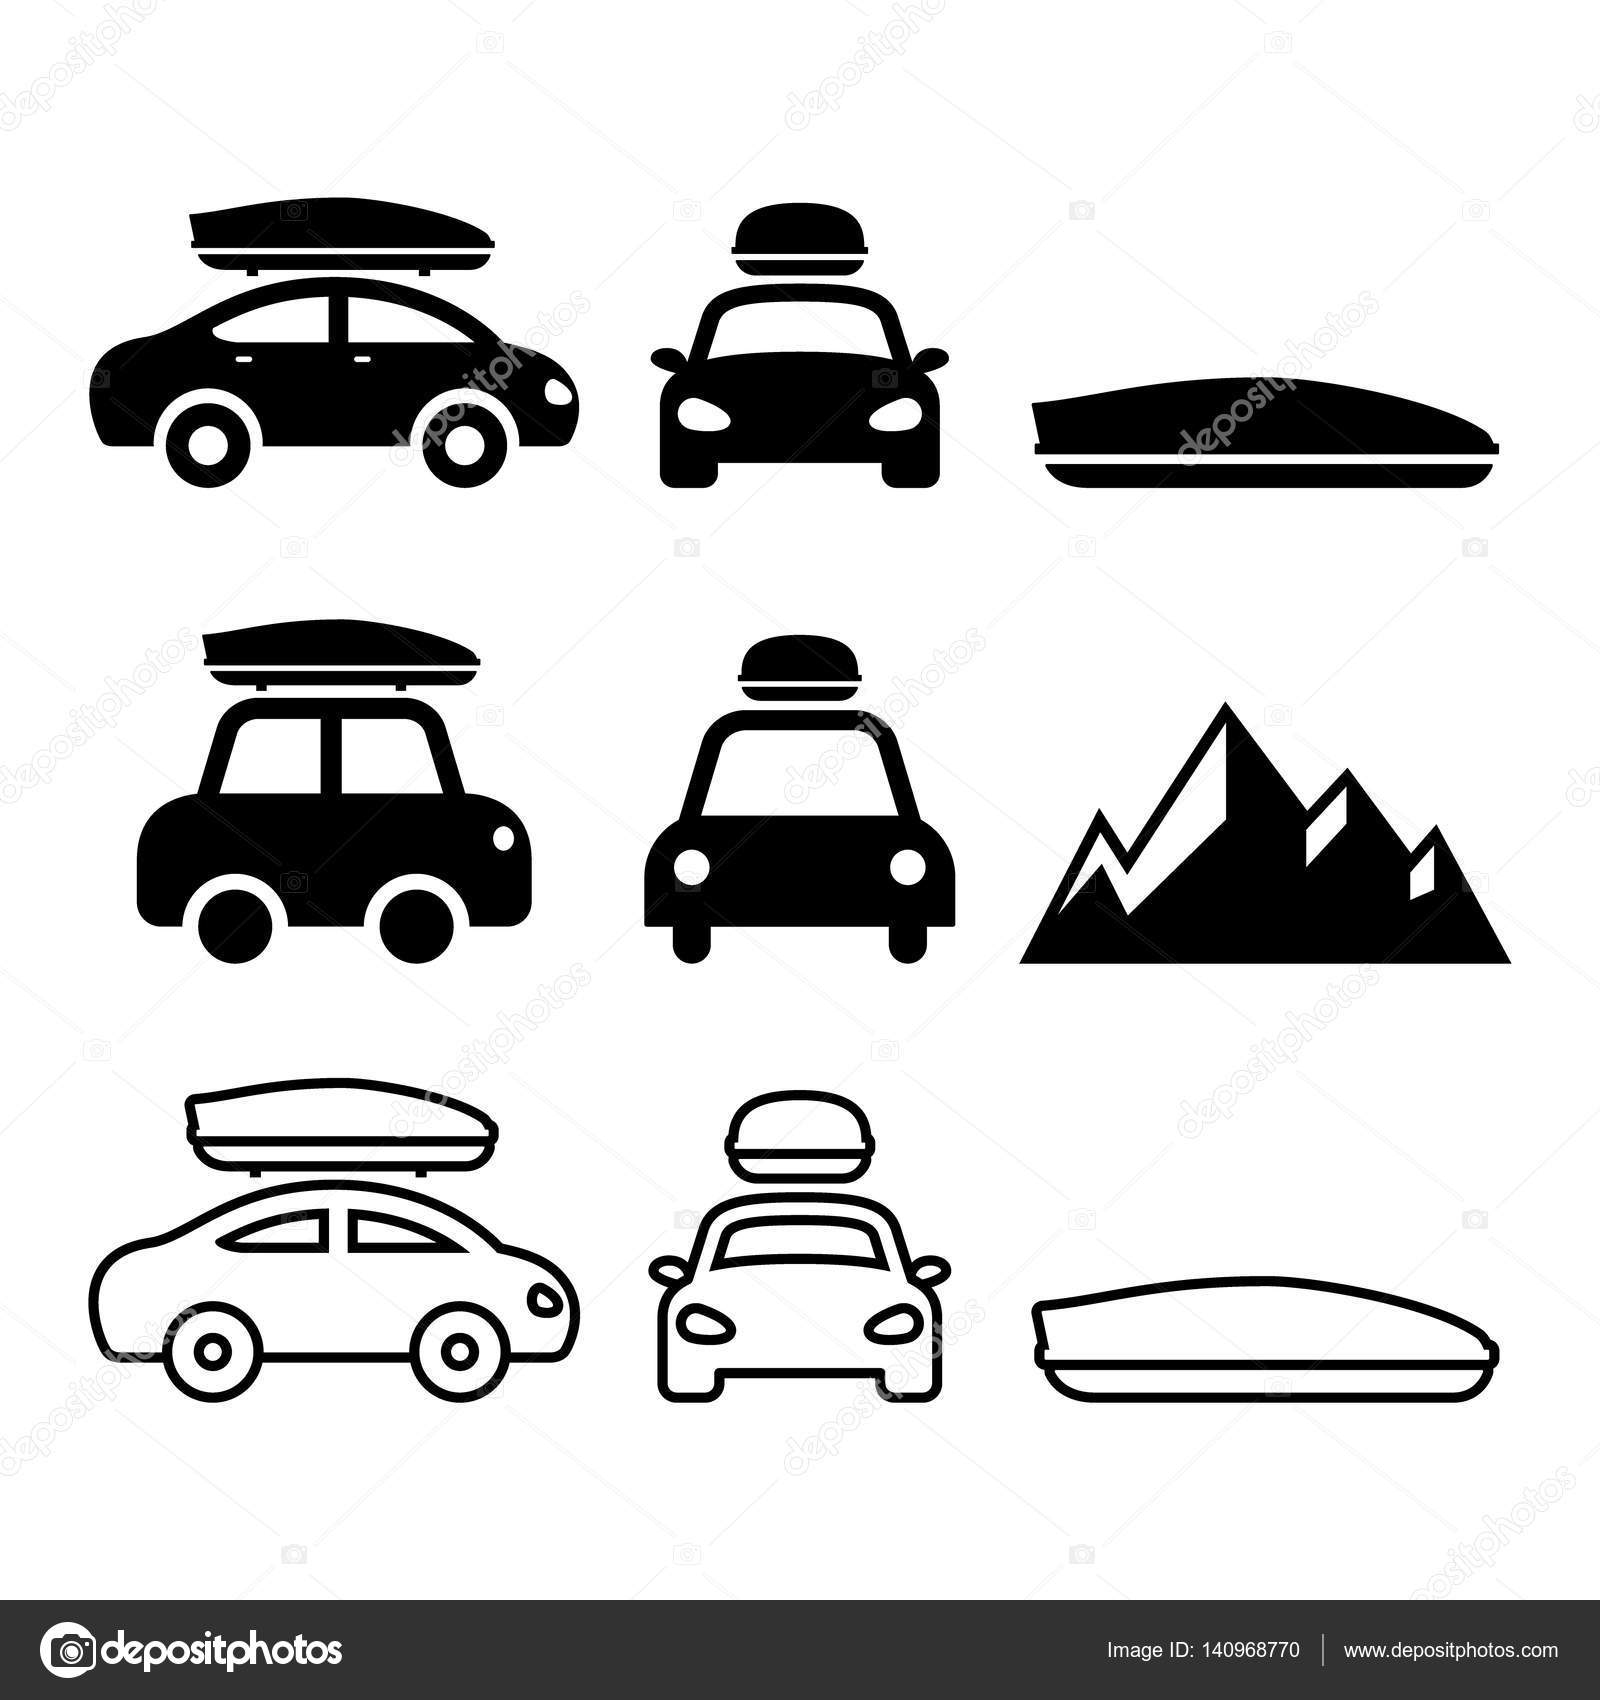 auto dachbox dachtr ger oder tr ger vektor icons set. Black Bedroom Furniture Sets. Home Design Ideas